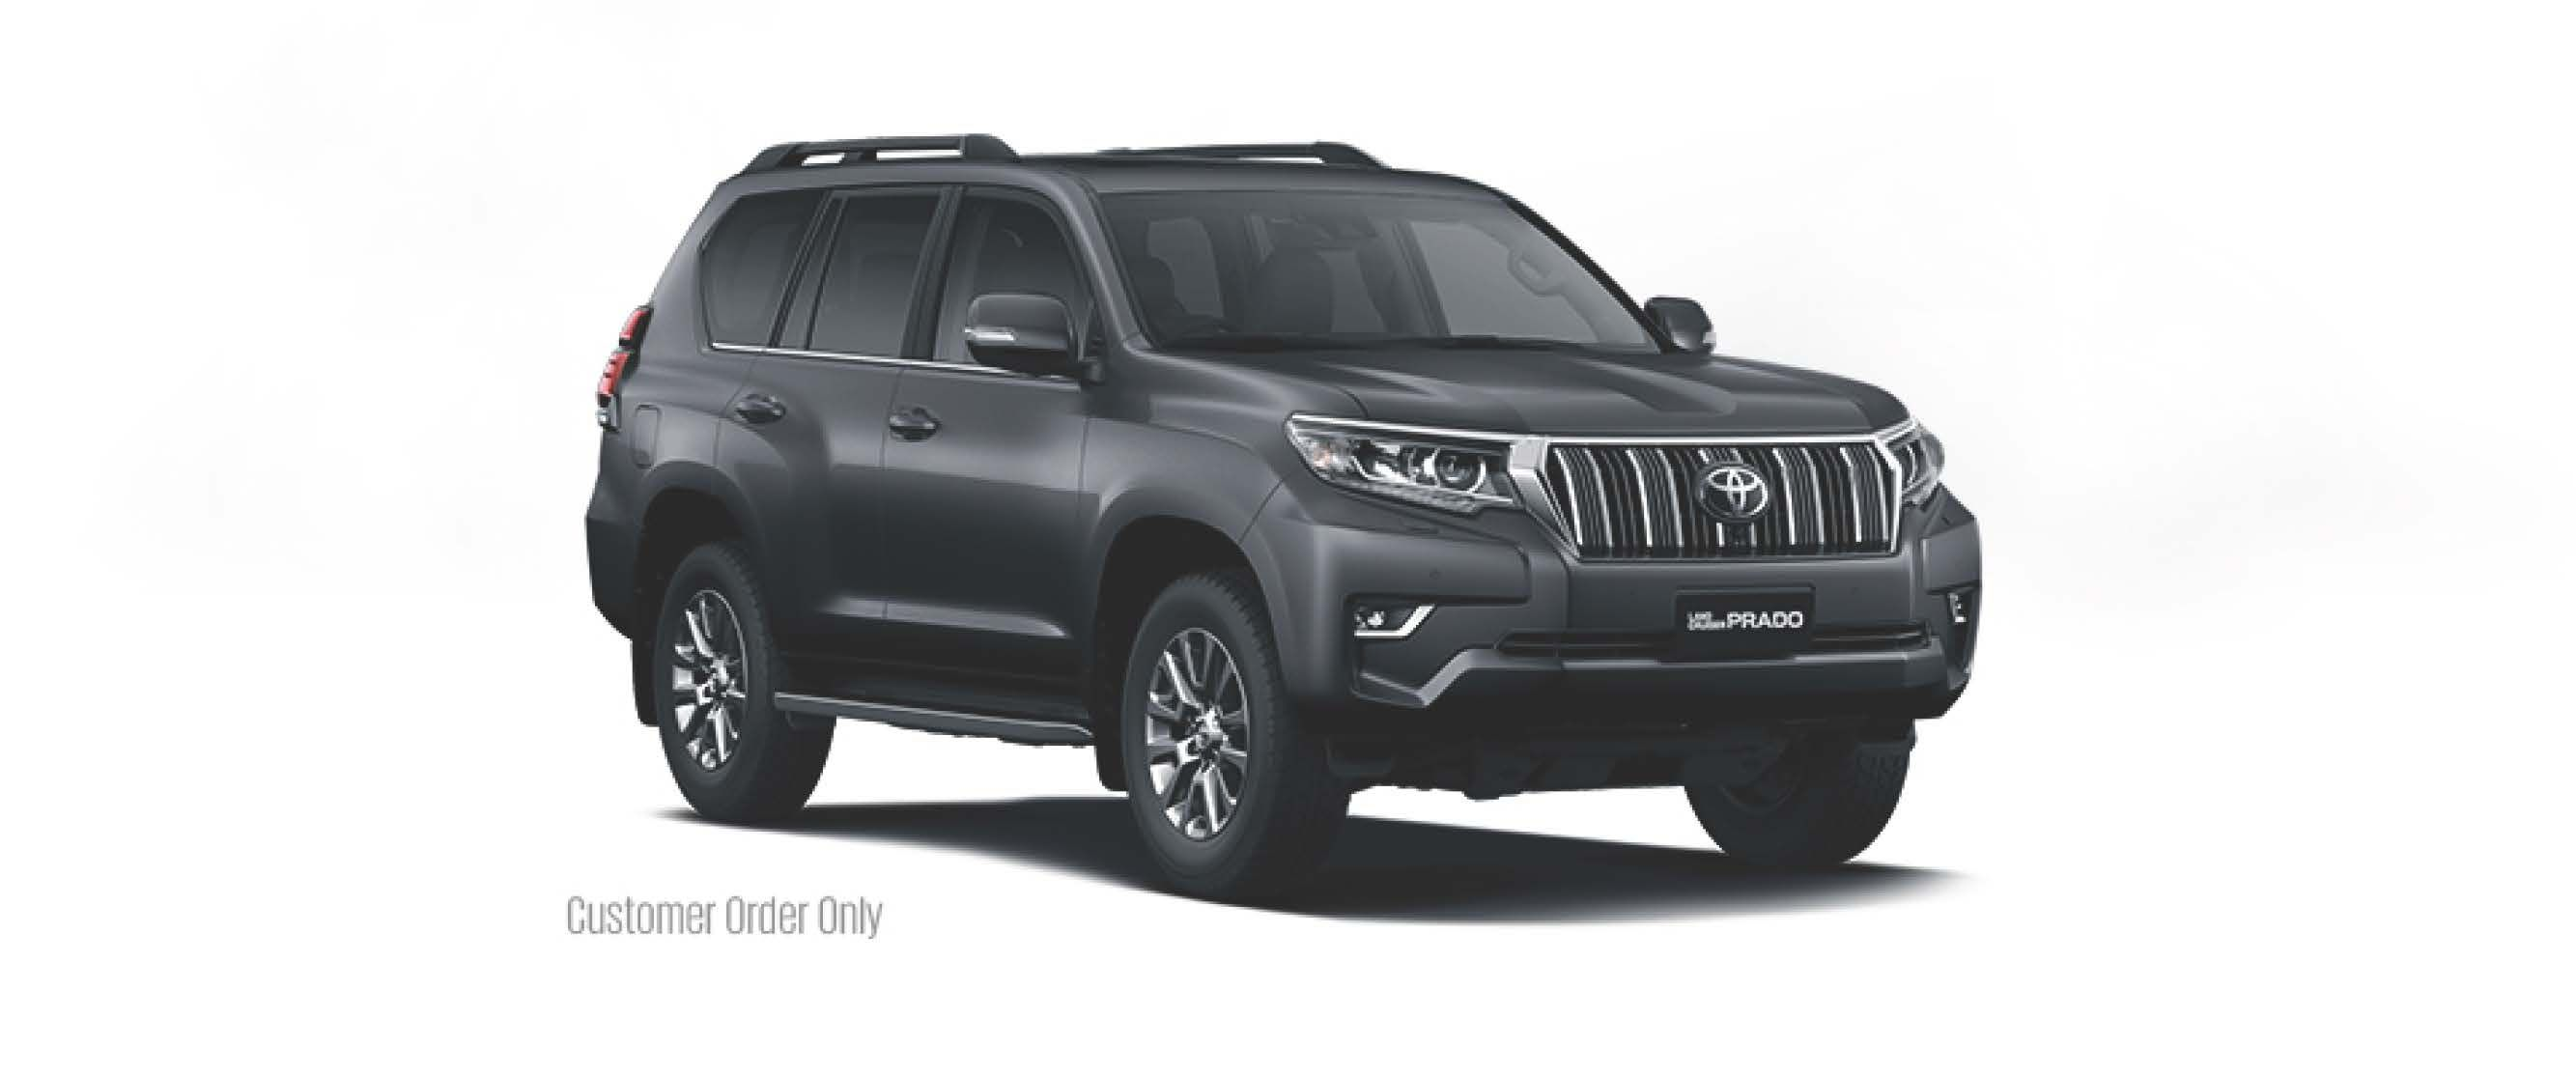 Prado Land Cruiser Price >> Toyota Land Cruiser Prado